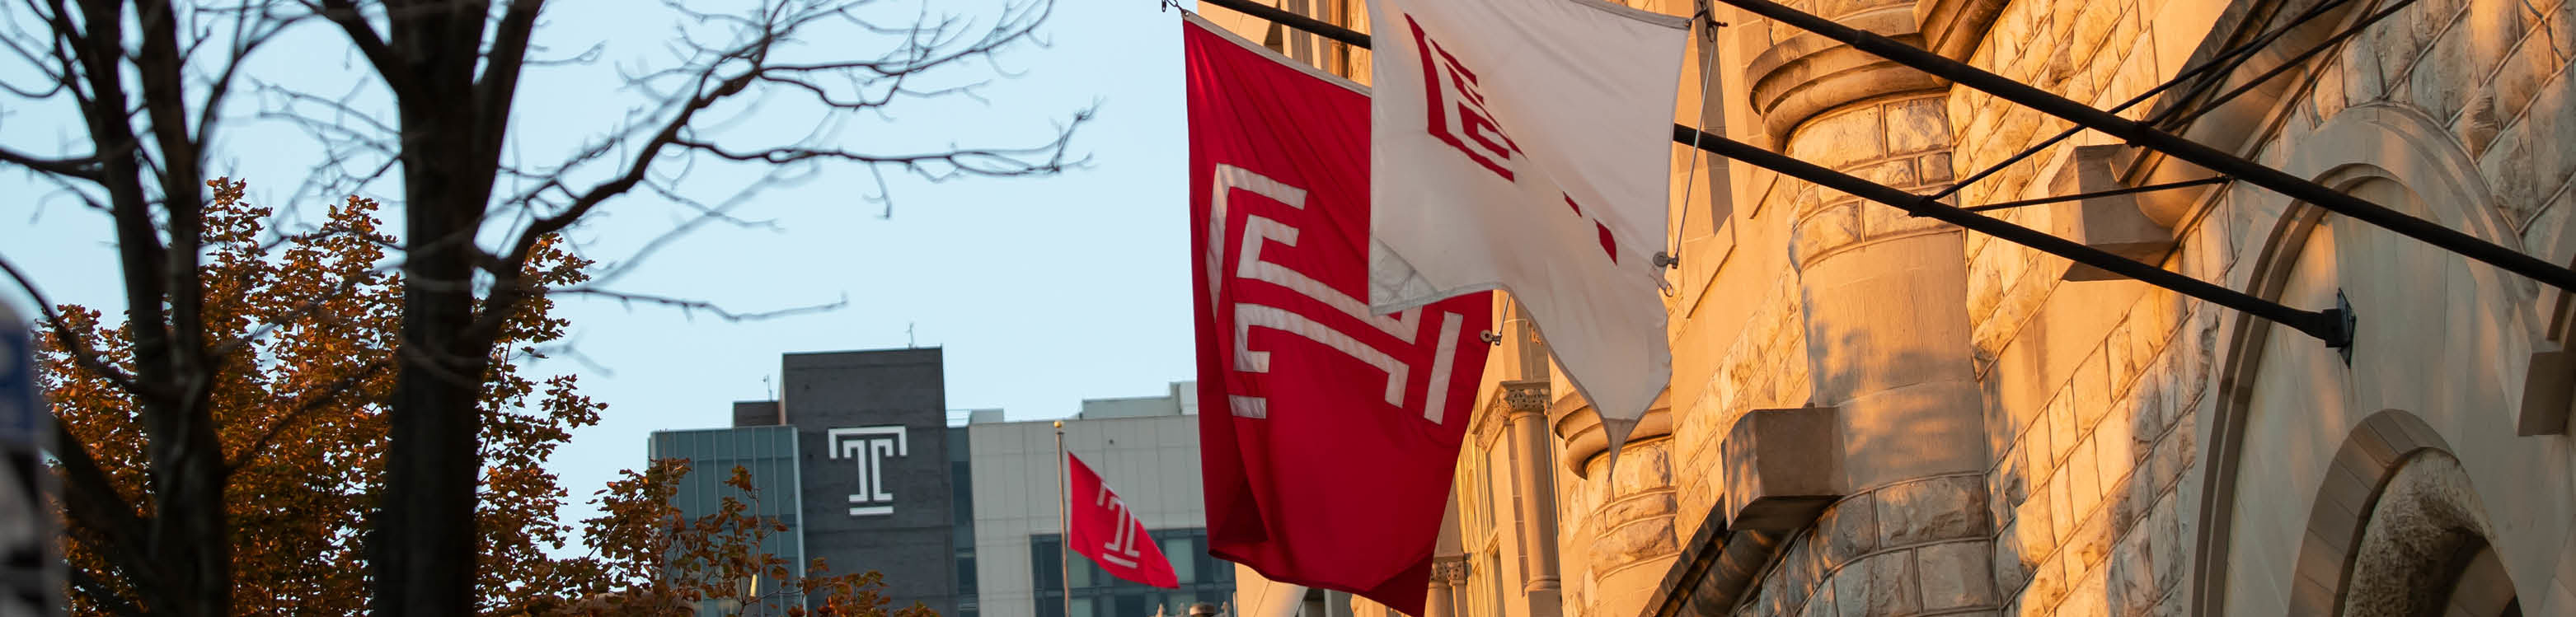 TPAC and Morgan Hall w/ Temple Flags and a tree